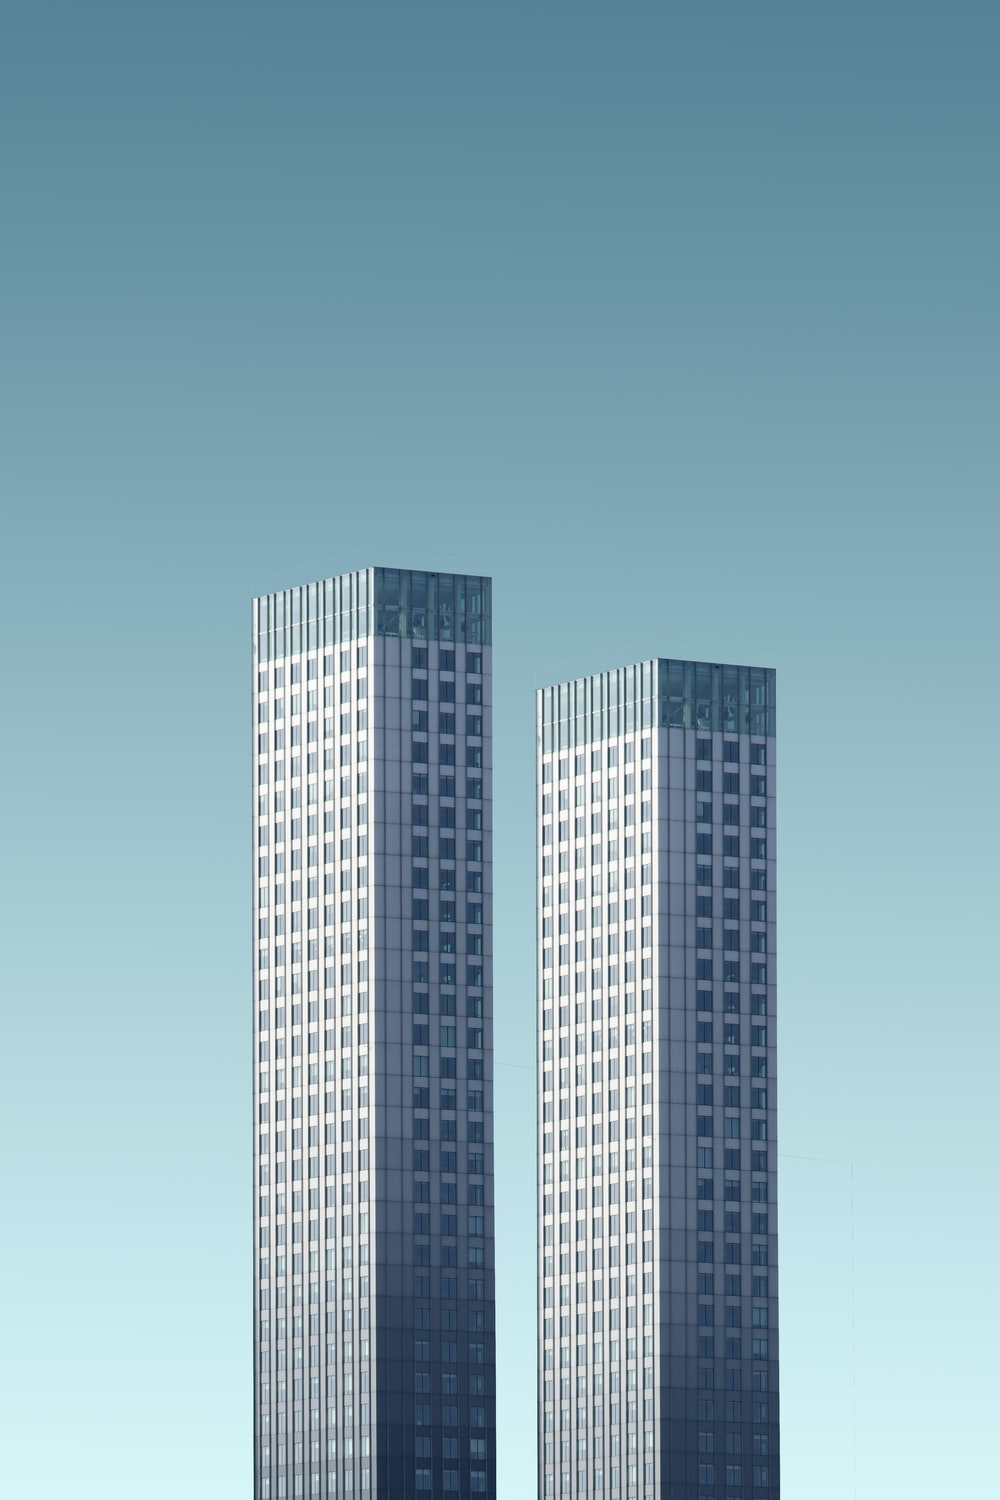 two teal-and-white skyscrapers